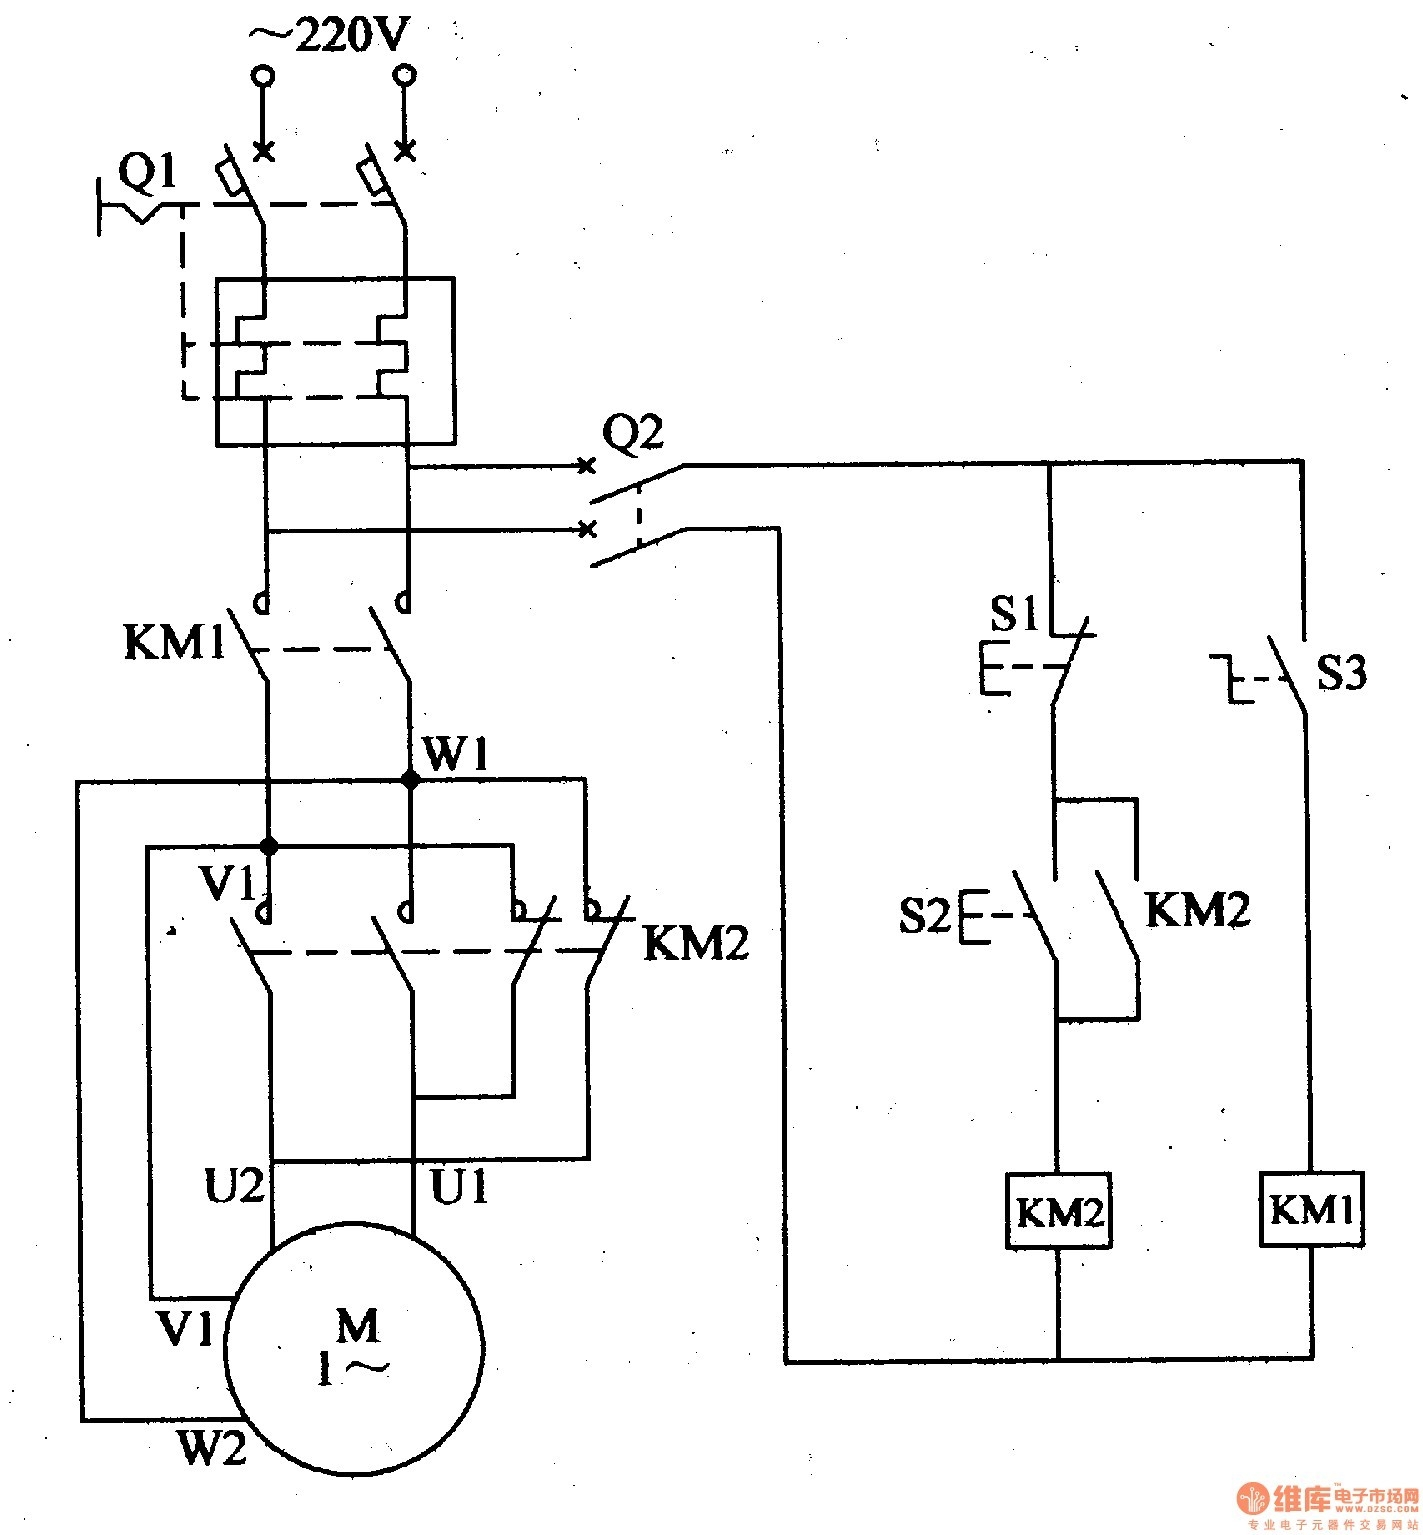 single phase motor starter wiring diagram pdf Download-Wiring Diagram Motor Fresh Single Phase Motor Starter Wiring Diagram 13-f